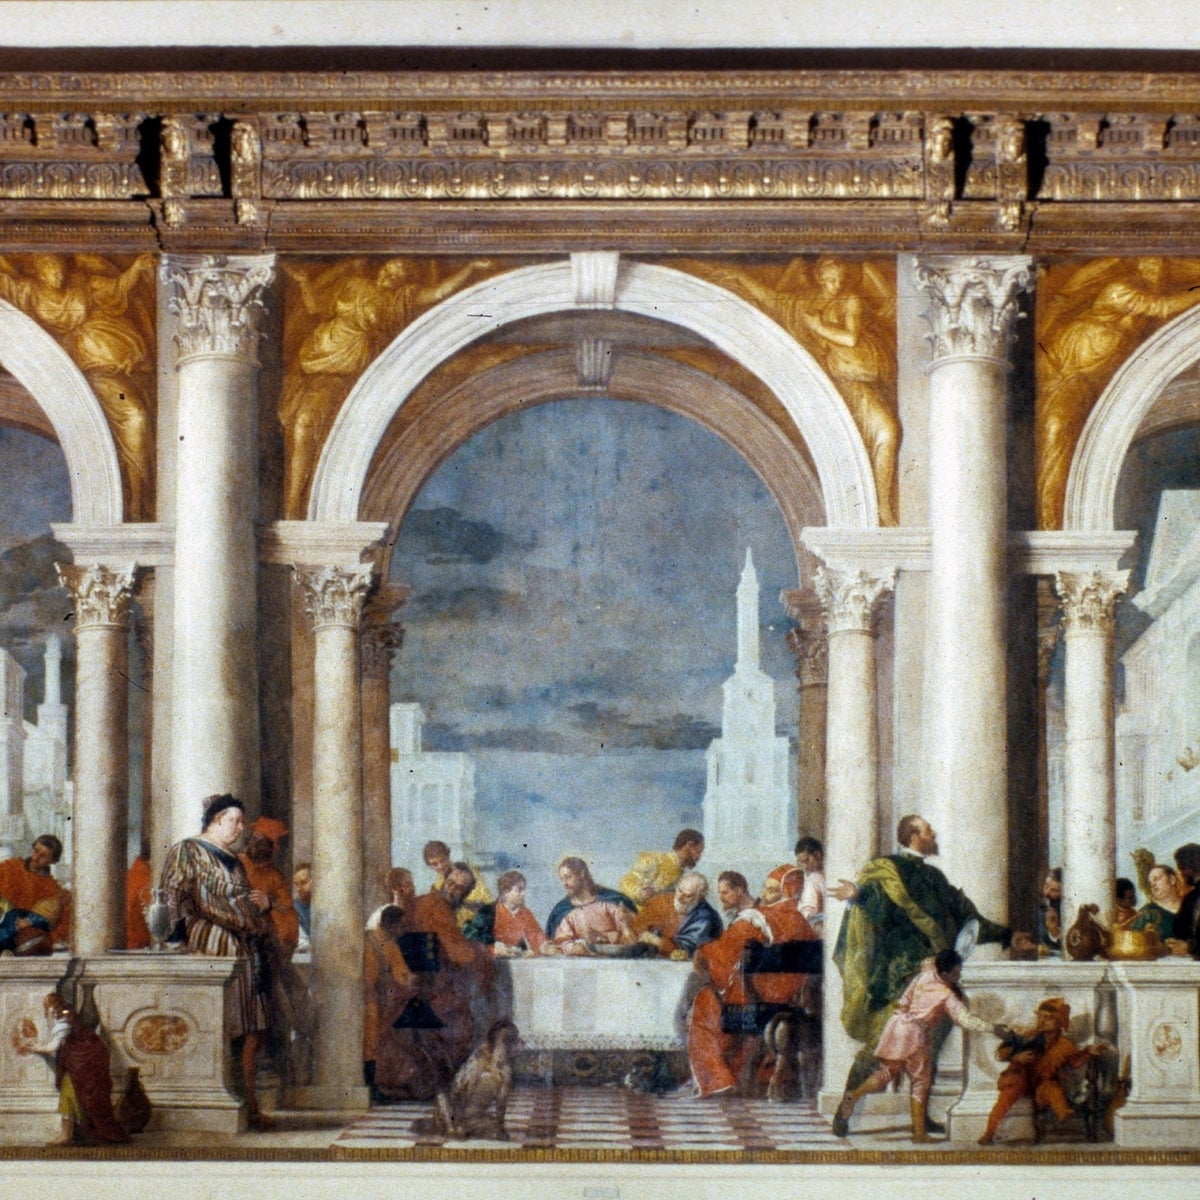 'Feast in the House of Levi,' by Paolo Veronese, 1573.